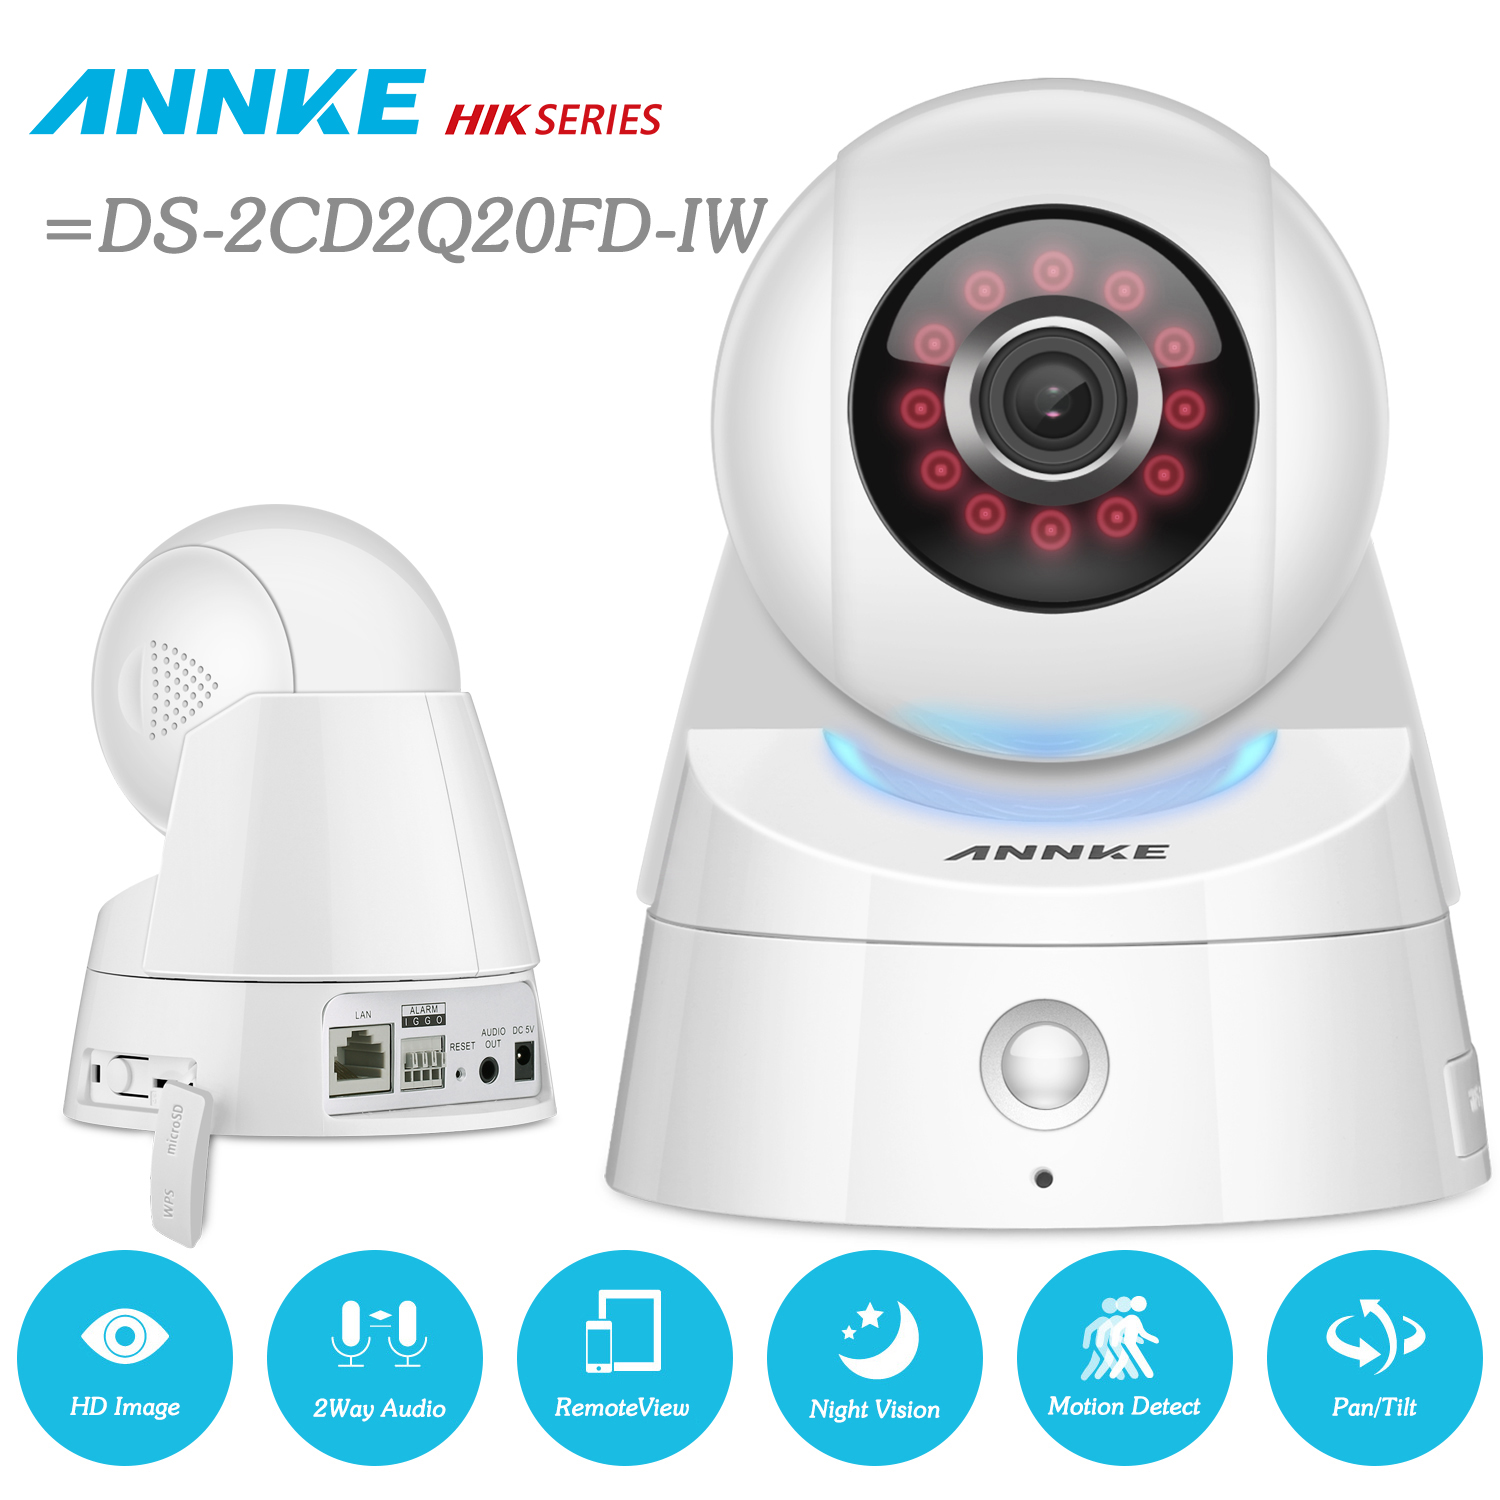 ANNKE Full HD 1080p Wireless Wi-Fi IP Camera Audio 2.0MP Sensor Infrared Motion Detection PIR Alarm =HIK DS-2CD2Q20FD-IW hik ip camera ds 2cd4026fwd ap ultra low light 128gb onvif rj45 intrusion detection face detection recognition